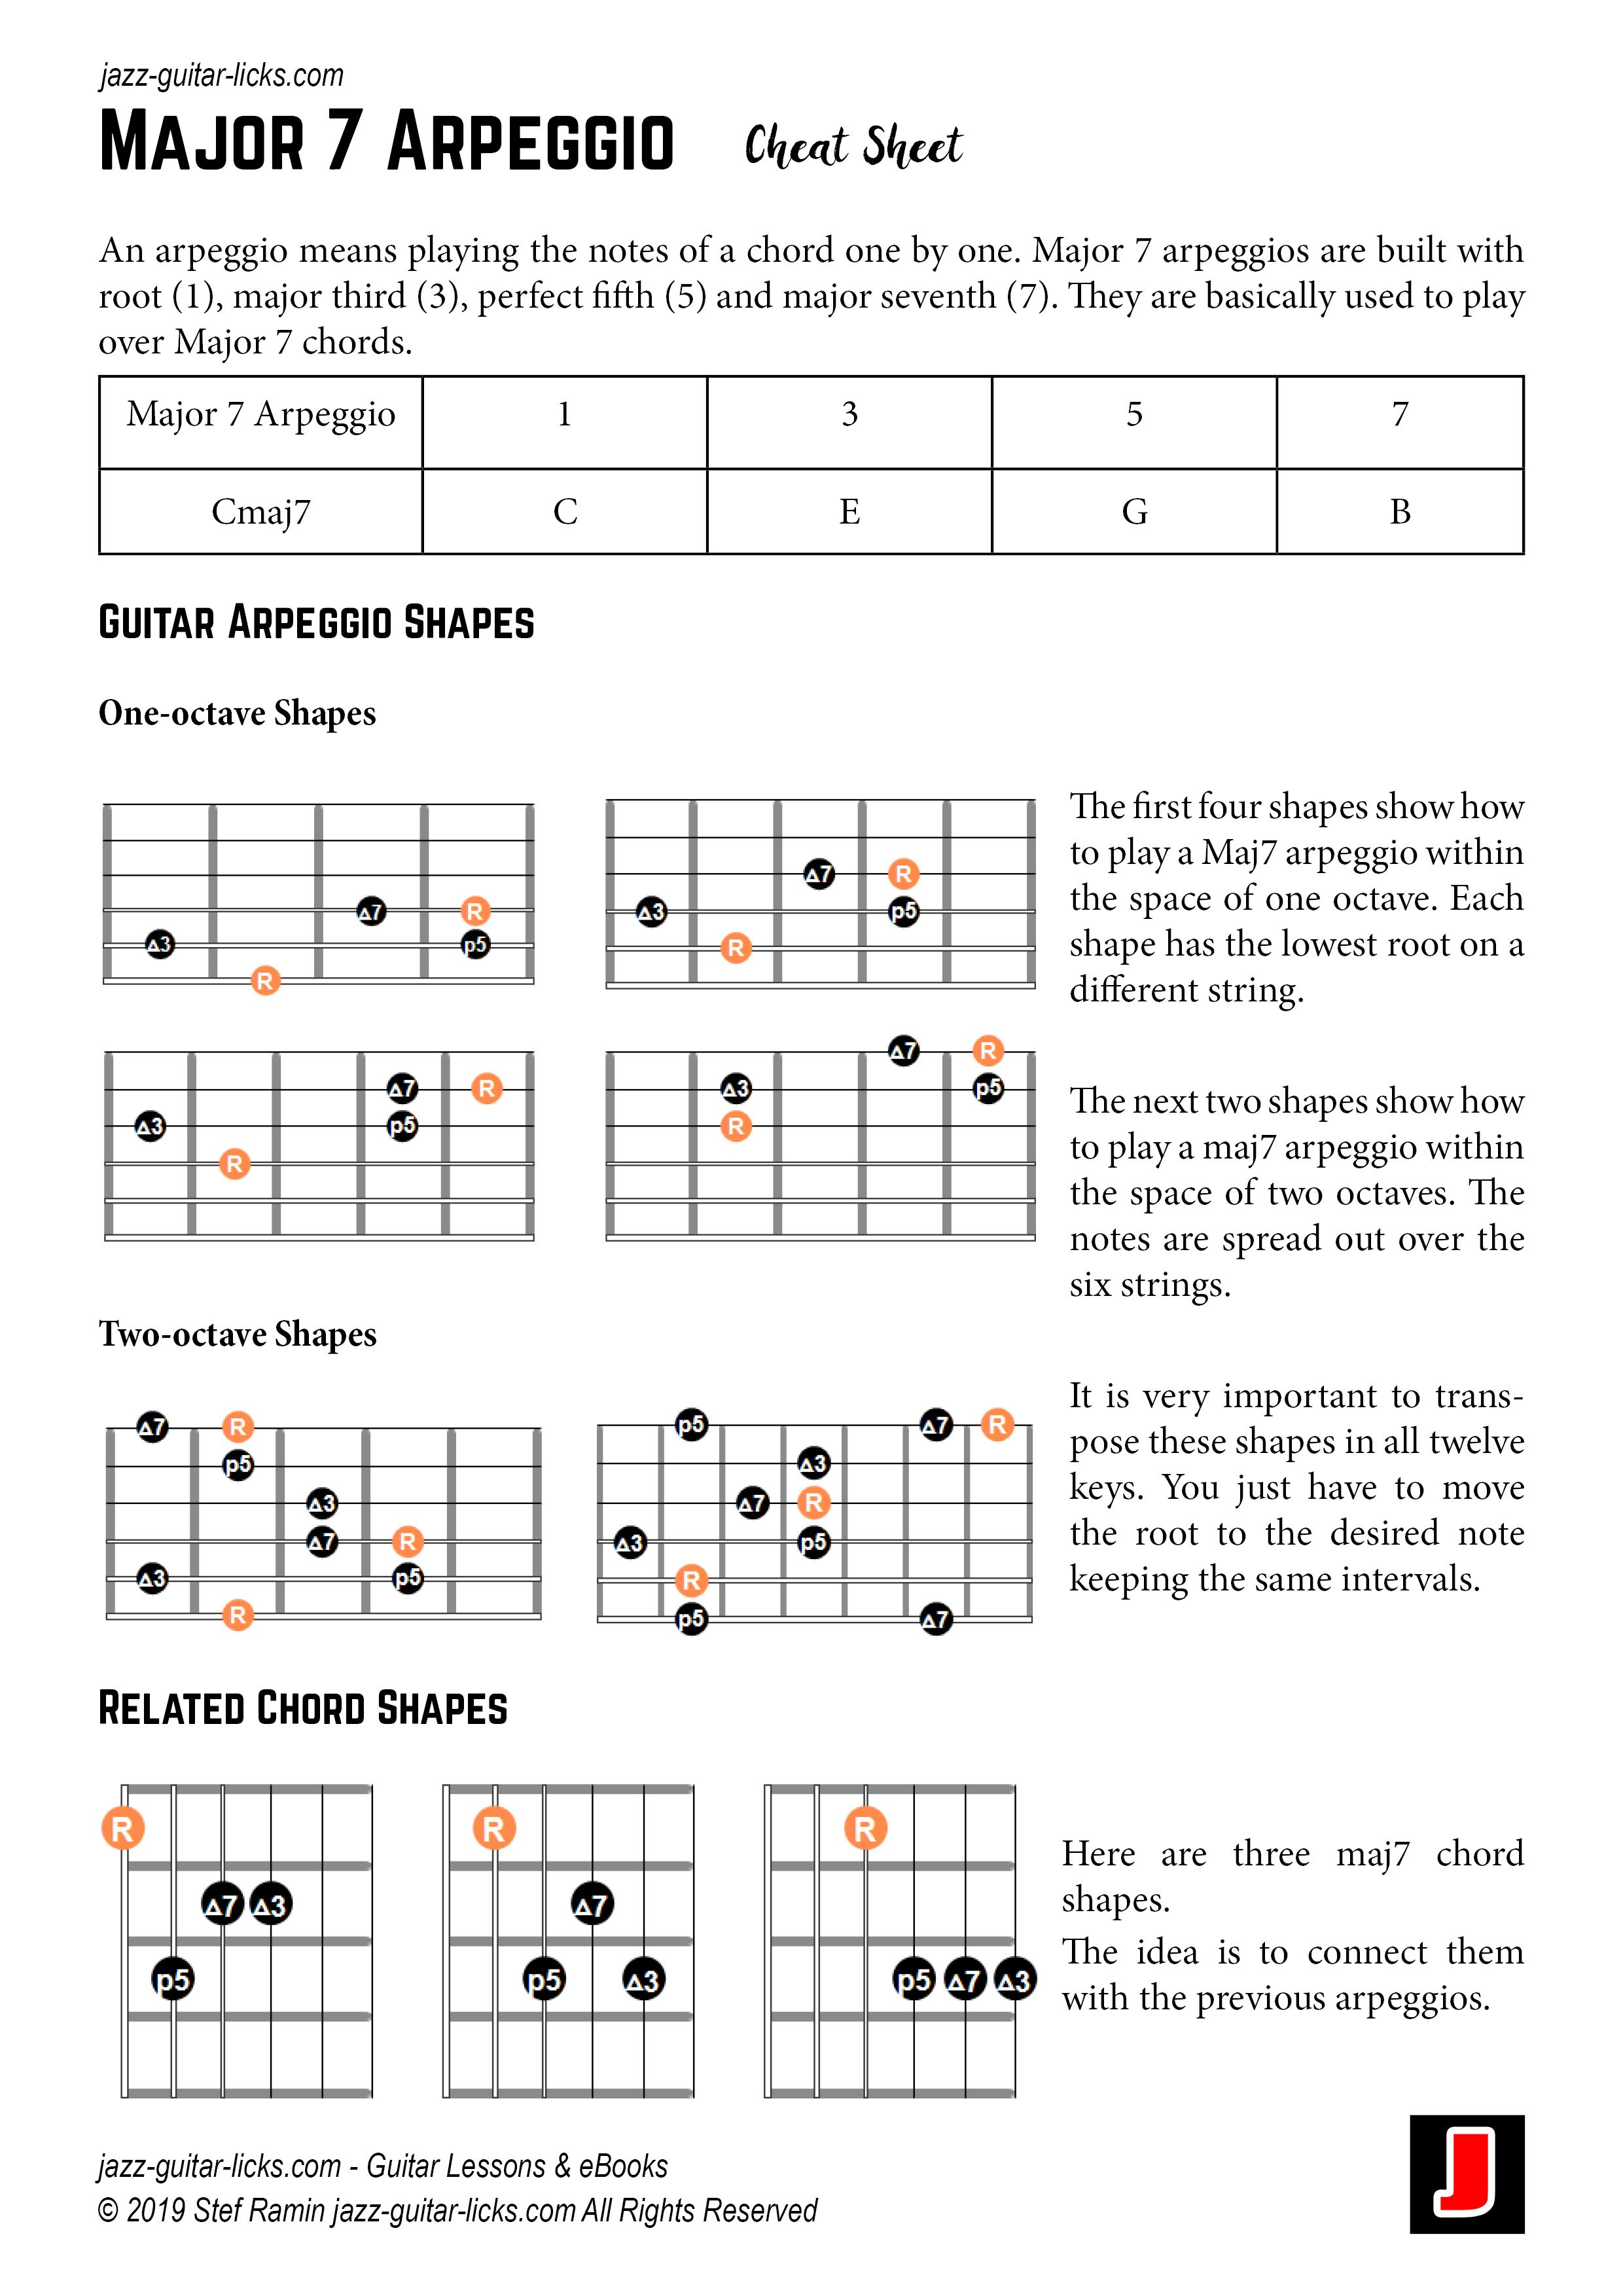 Major 7 Arpeggio Cheat Sheets With Images Jazz Guitar Guitar